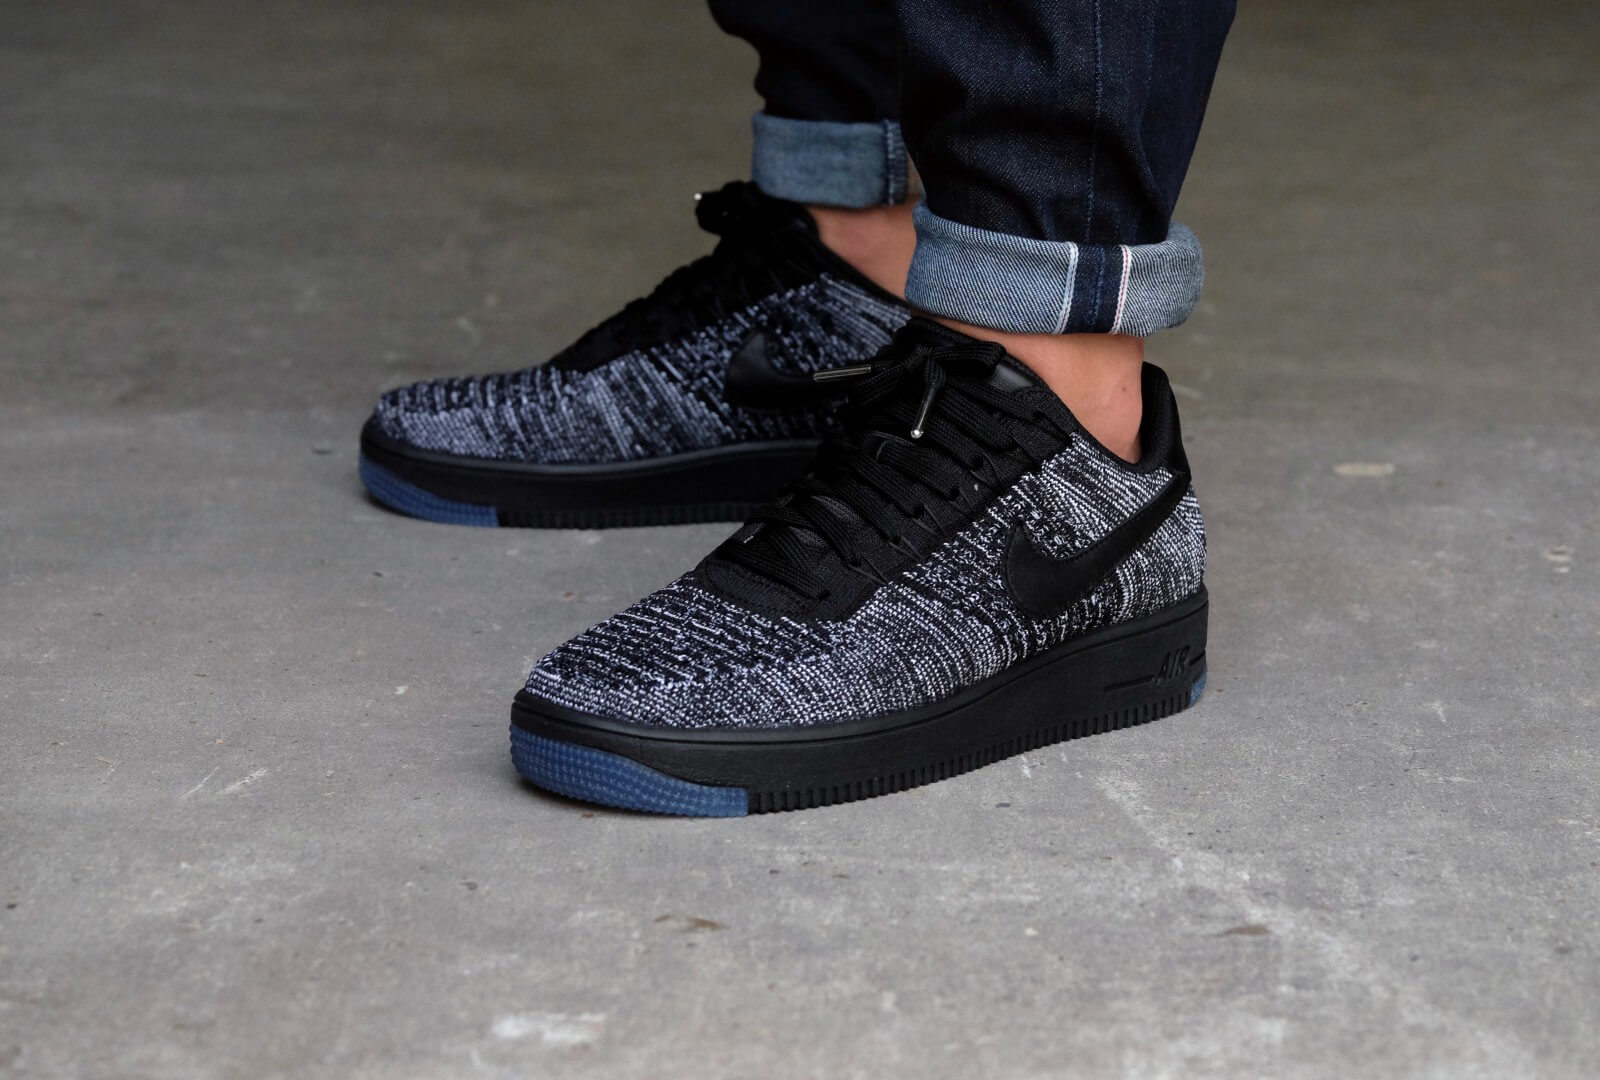 Nike WMNS Air Force 1 Flyknit Low BlackBlack White 820256 007